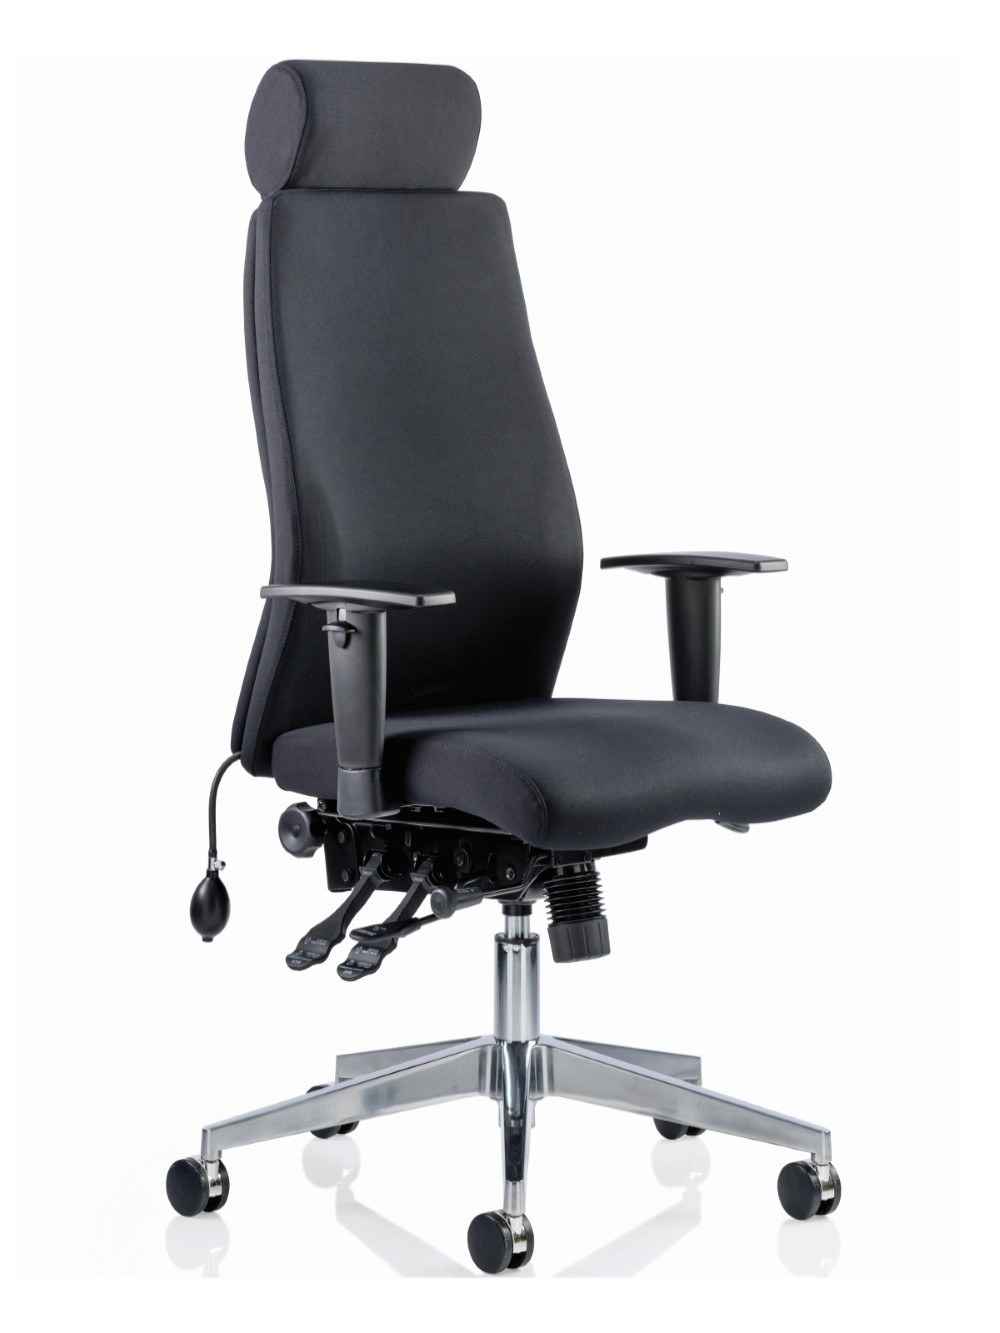 Picture of: Dynamic Onyx Fabric Office Chair With Headrest Op000096 121 Office Furniture